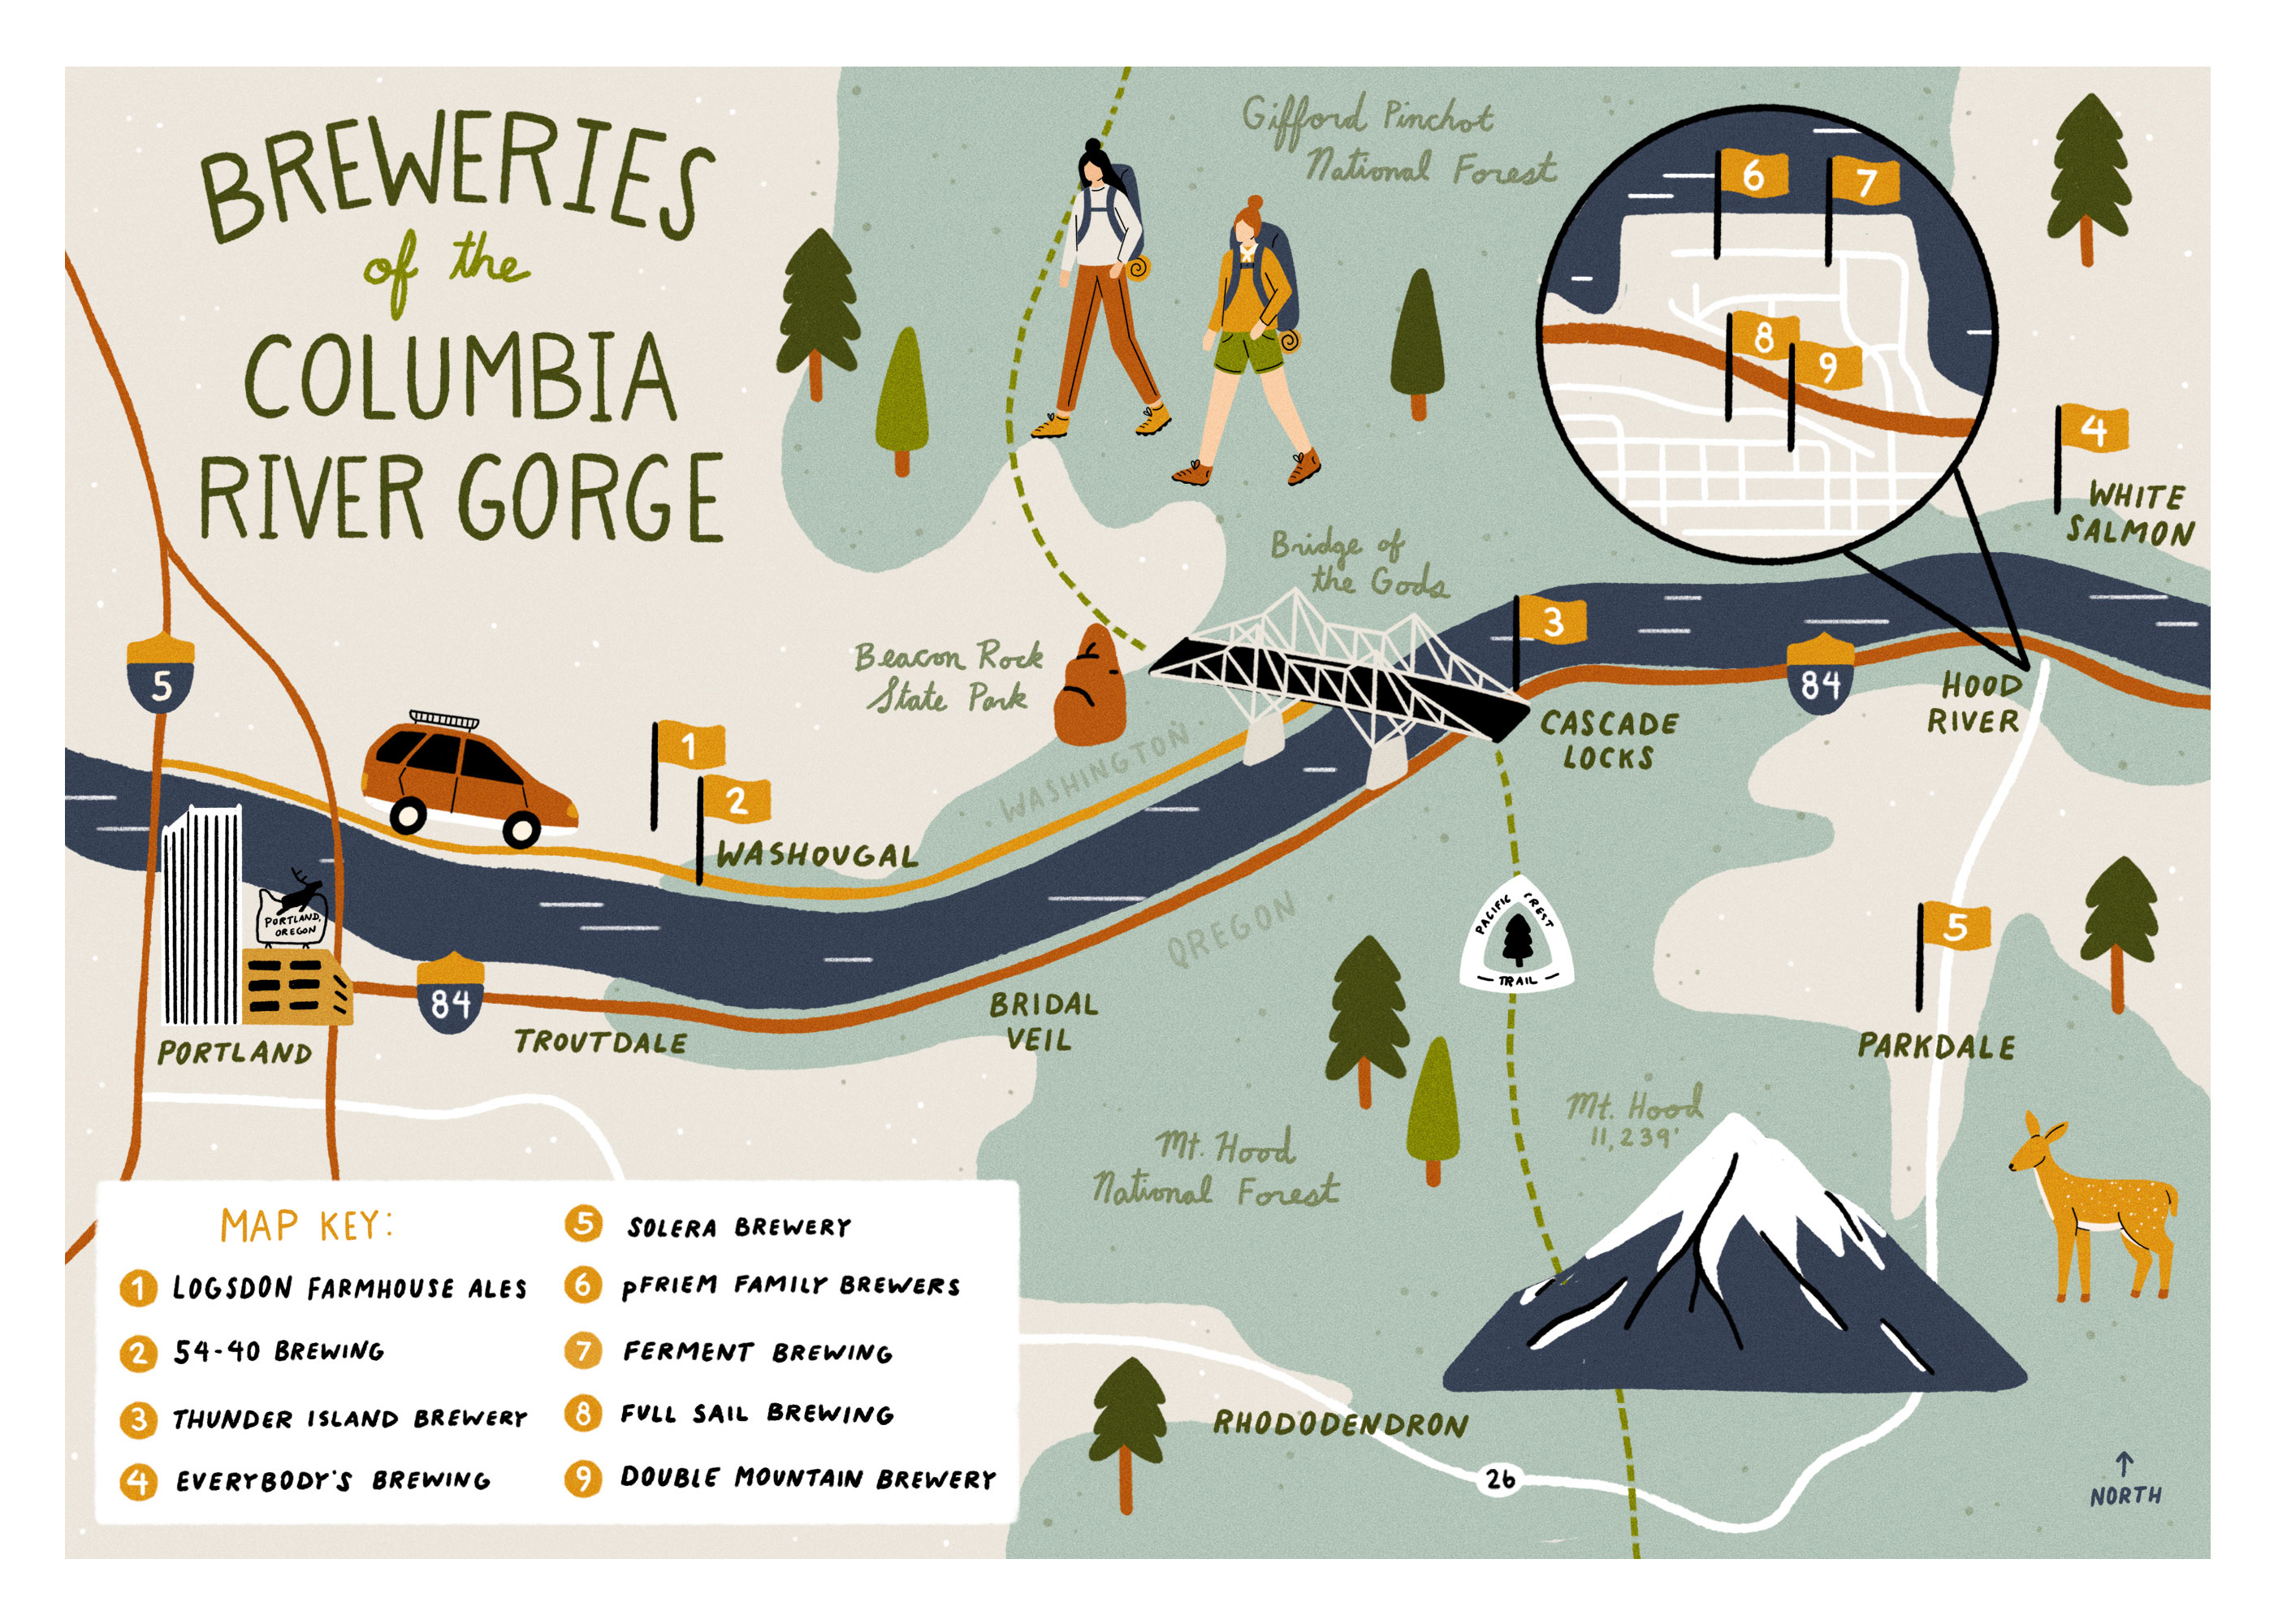 A Craft Beer Journey Through the Columbia River Gorge | October